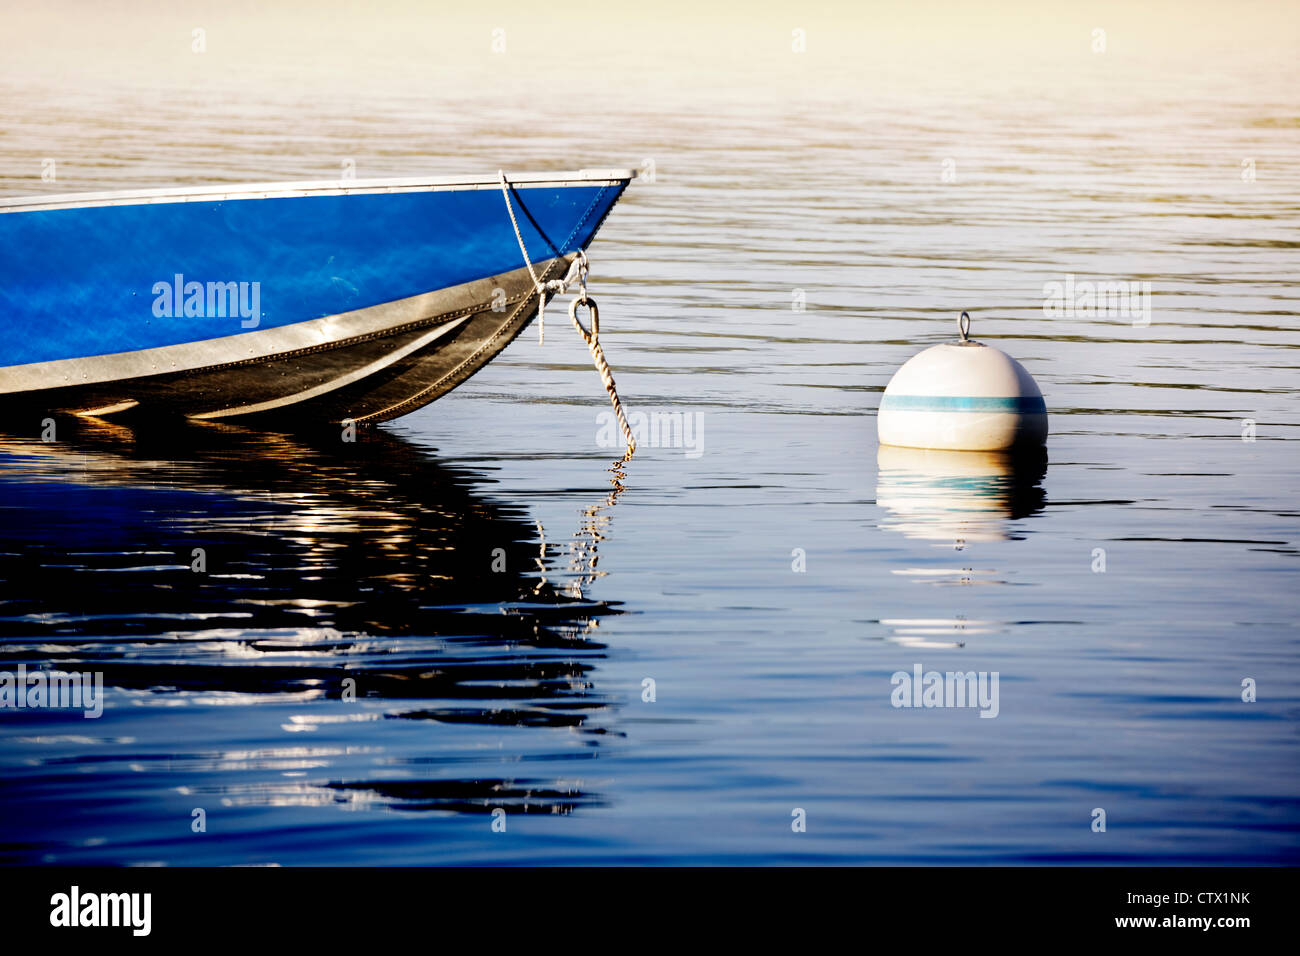 Small dinghy tied up to a buoy on a lake as the sun goes down - Stock Image